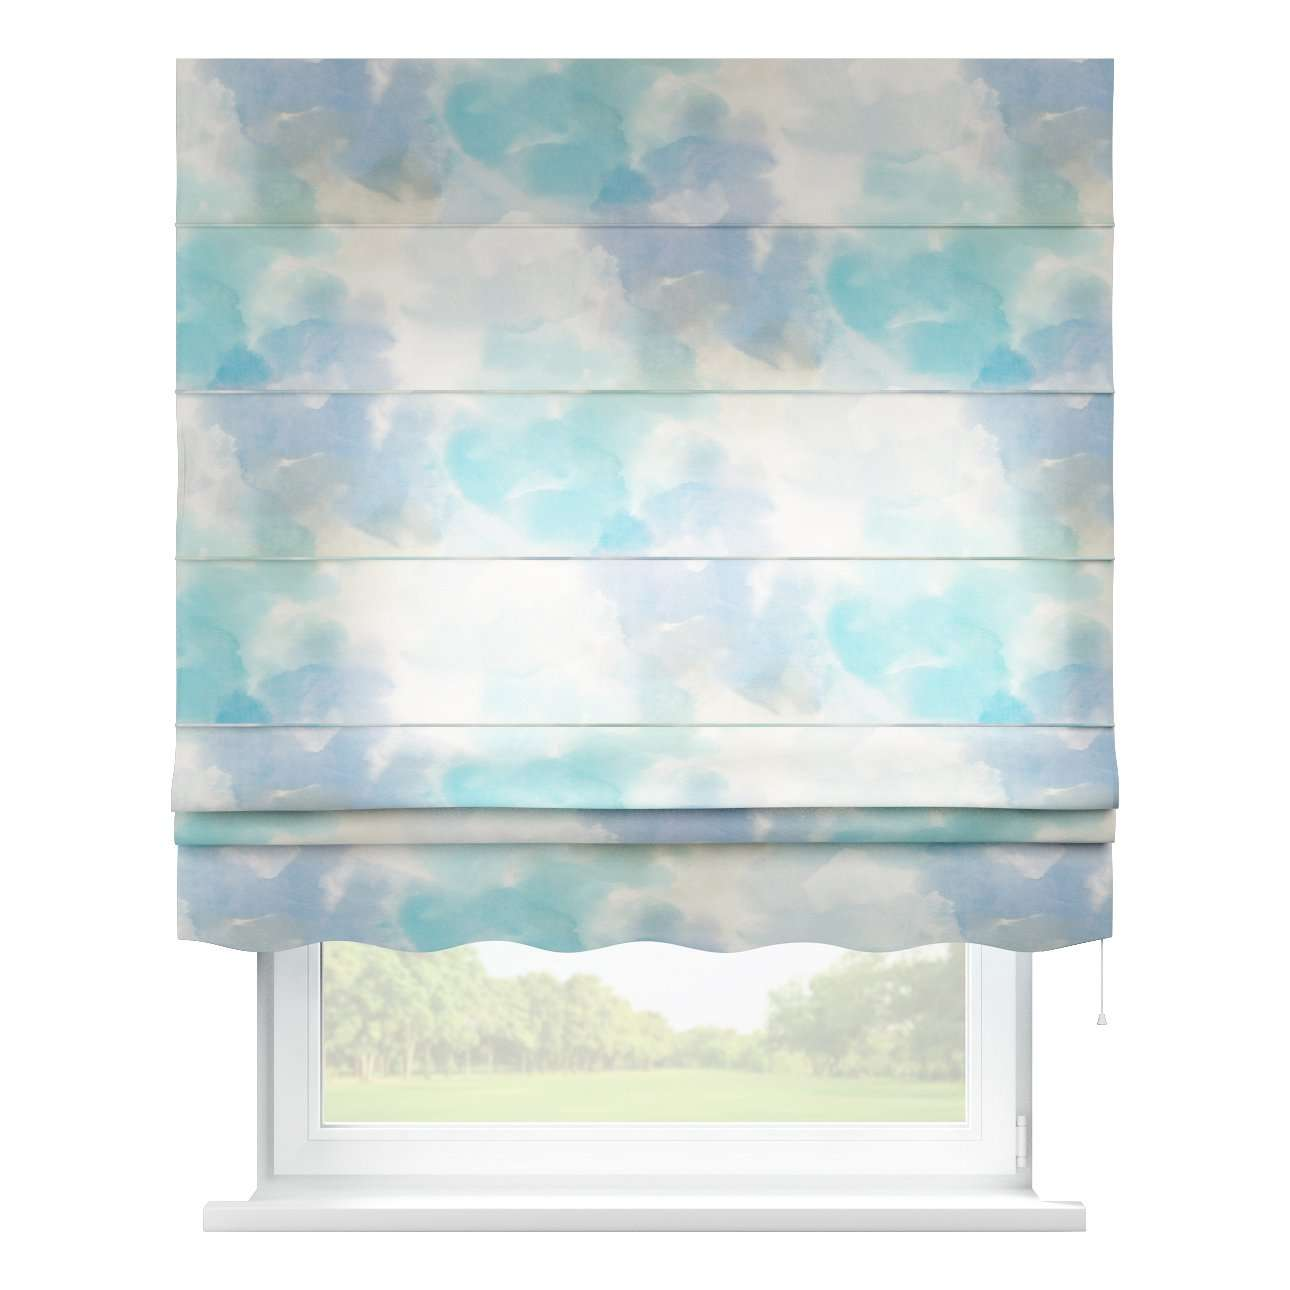 Florence roman blind  80 x 170 cm (31.5 x 67 inch) in collection Aquarelle, fabric: 140-67